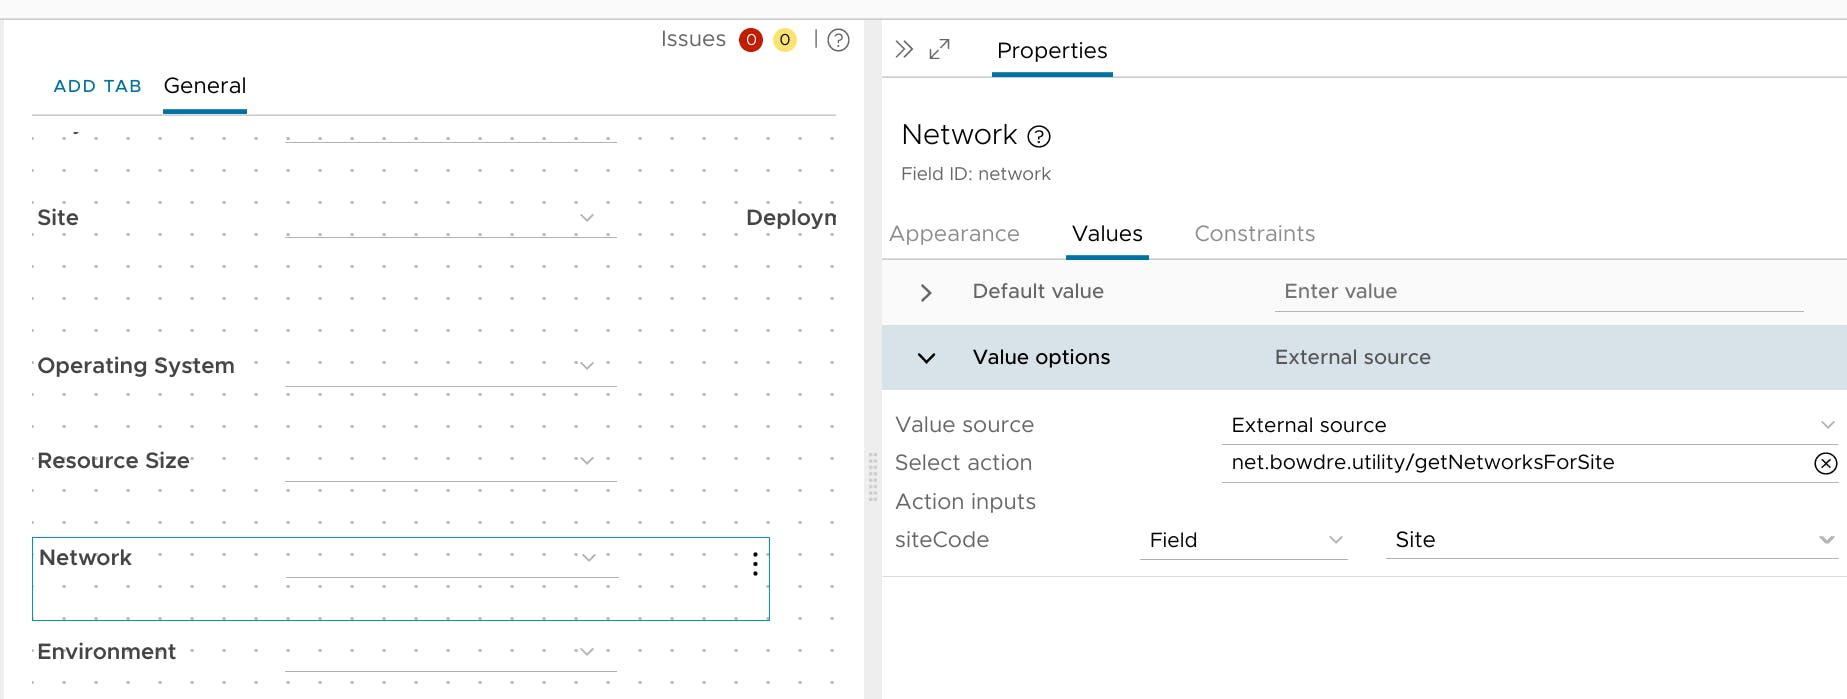 Linking the Network field to the getNetworksForSite action